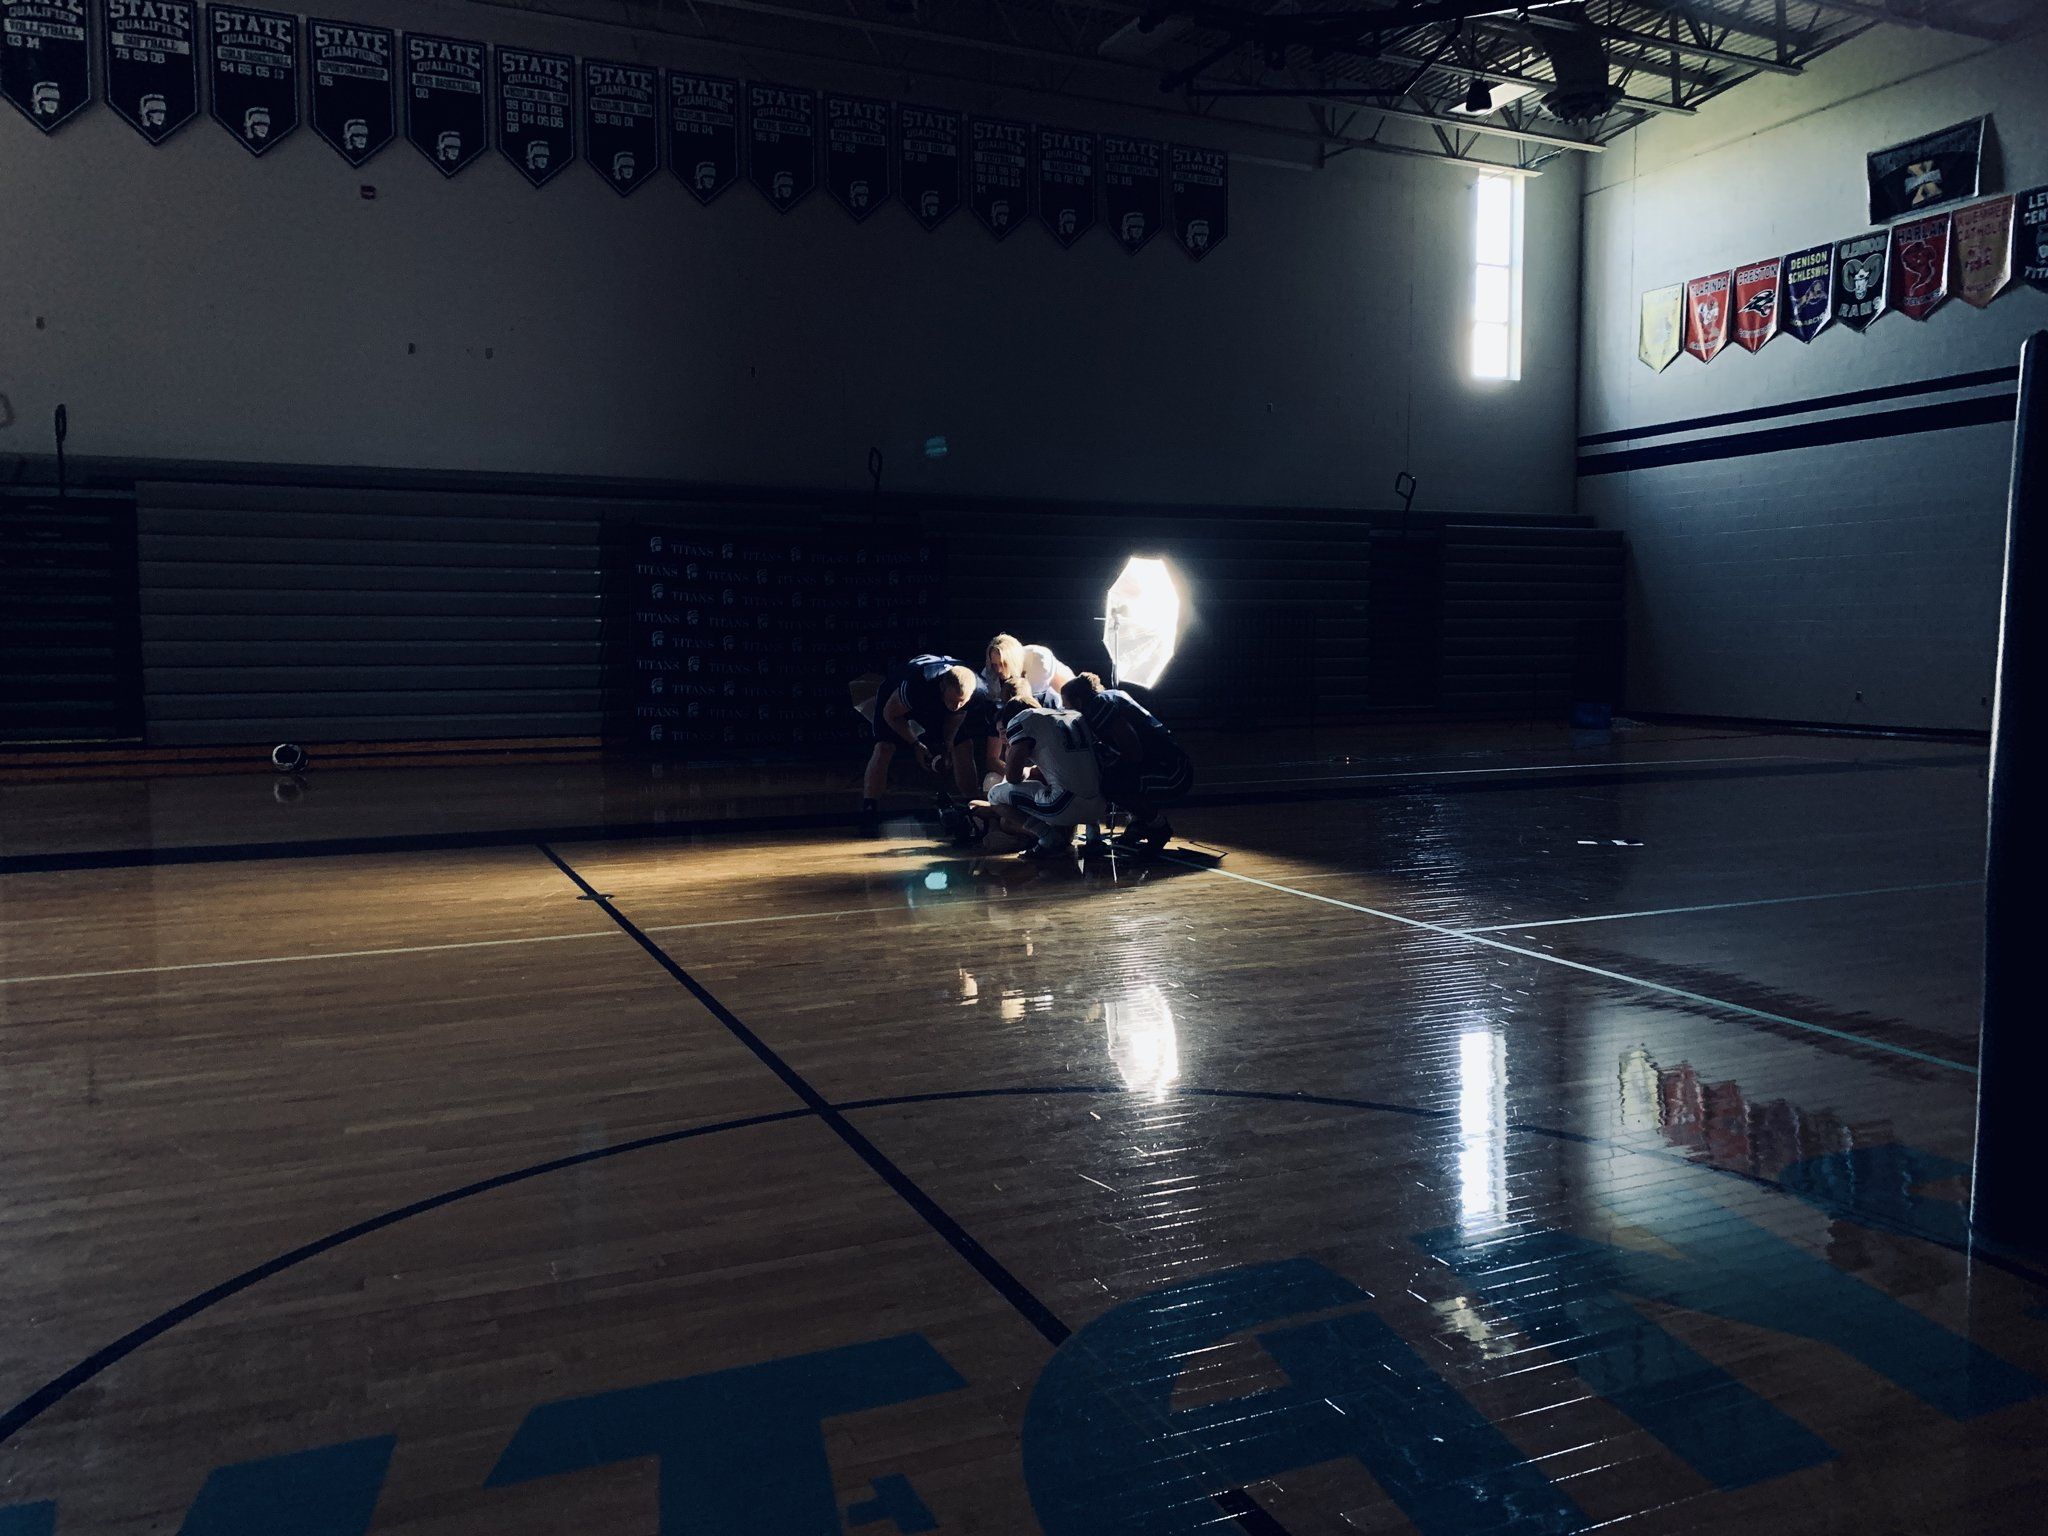 Great afternoon getting the @lc_ftbll captains in front of the camera. #LCTitans https://t.co/s4zH7ltqtu